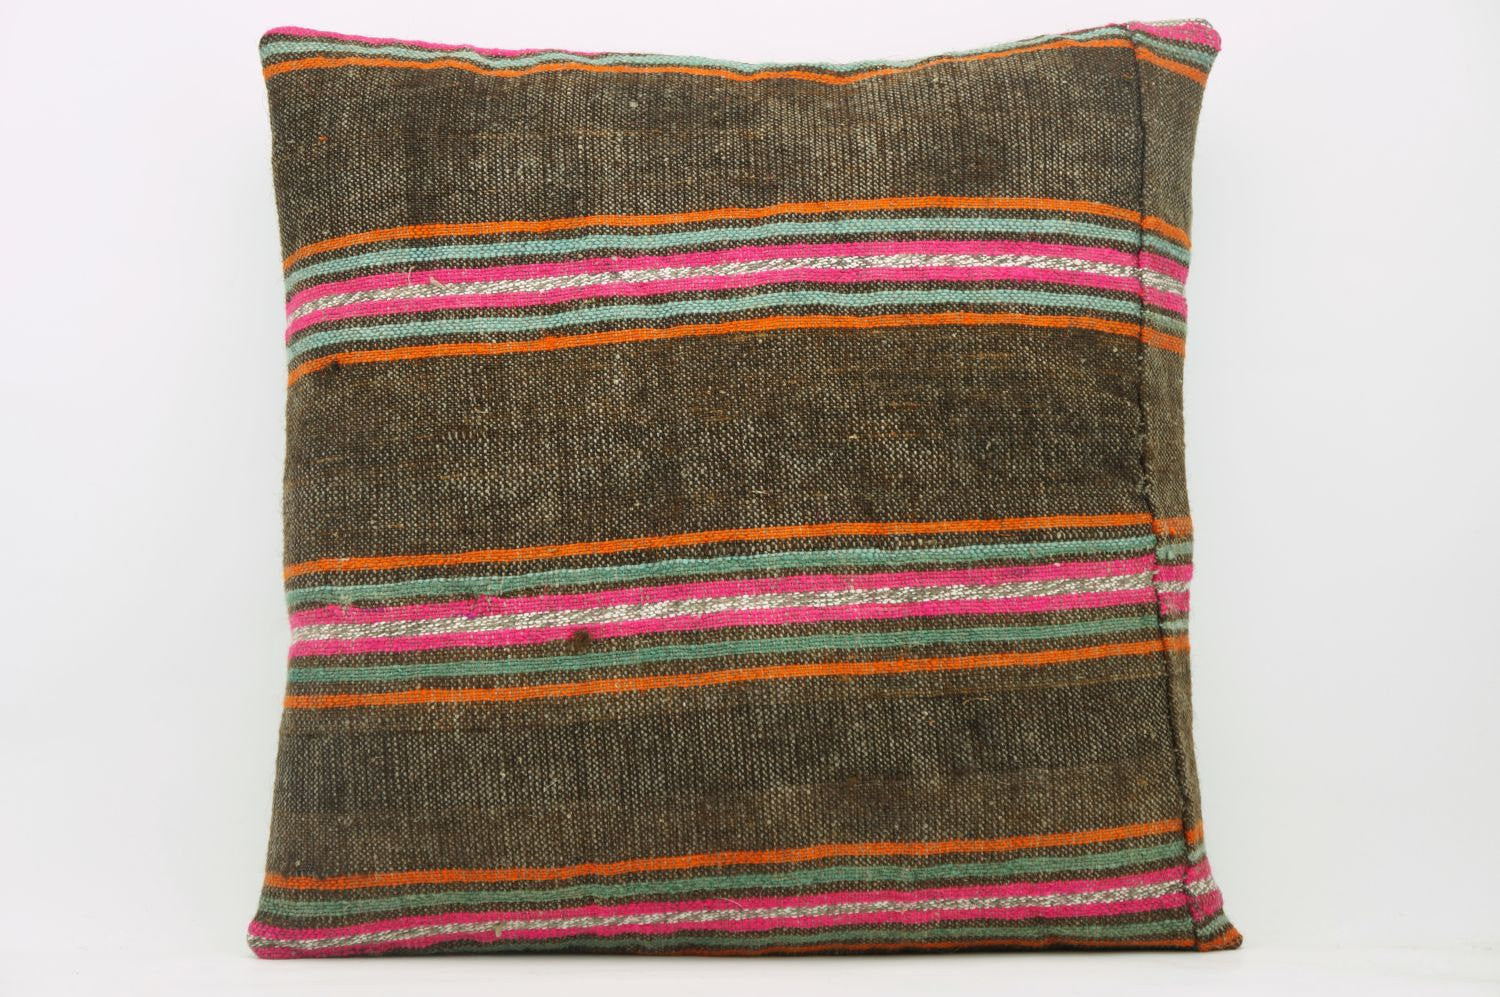 CLEARANCE 16x16 Hand Woven wool striped Kilim Pillow cushion 1105_A Wool pillow ,striped,pink,brown,orange